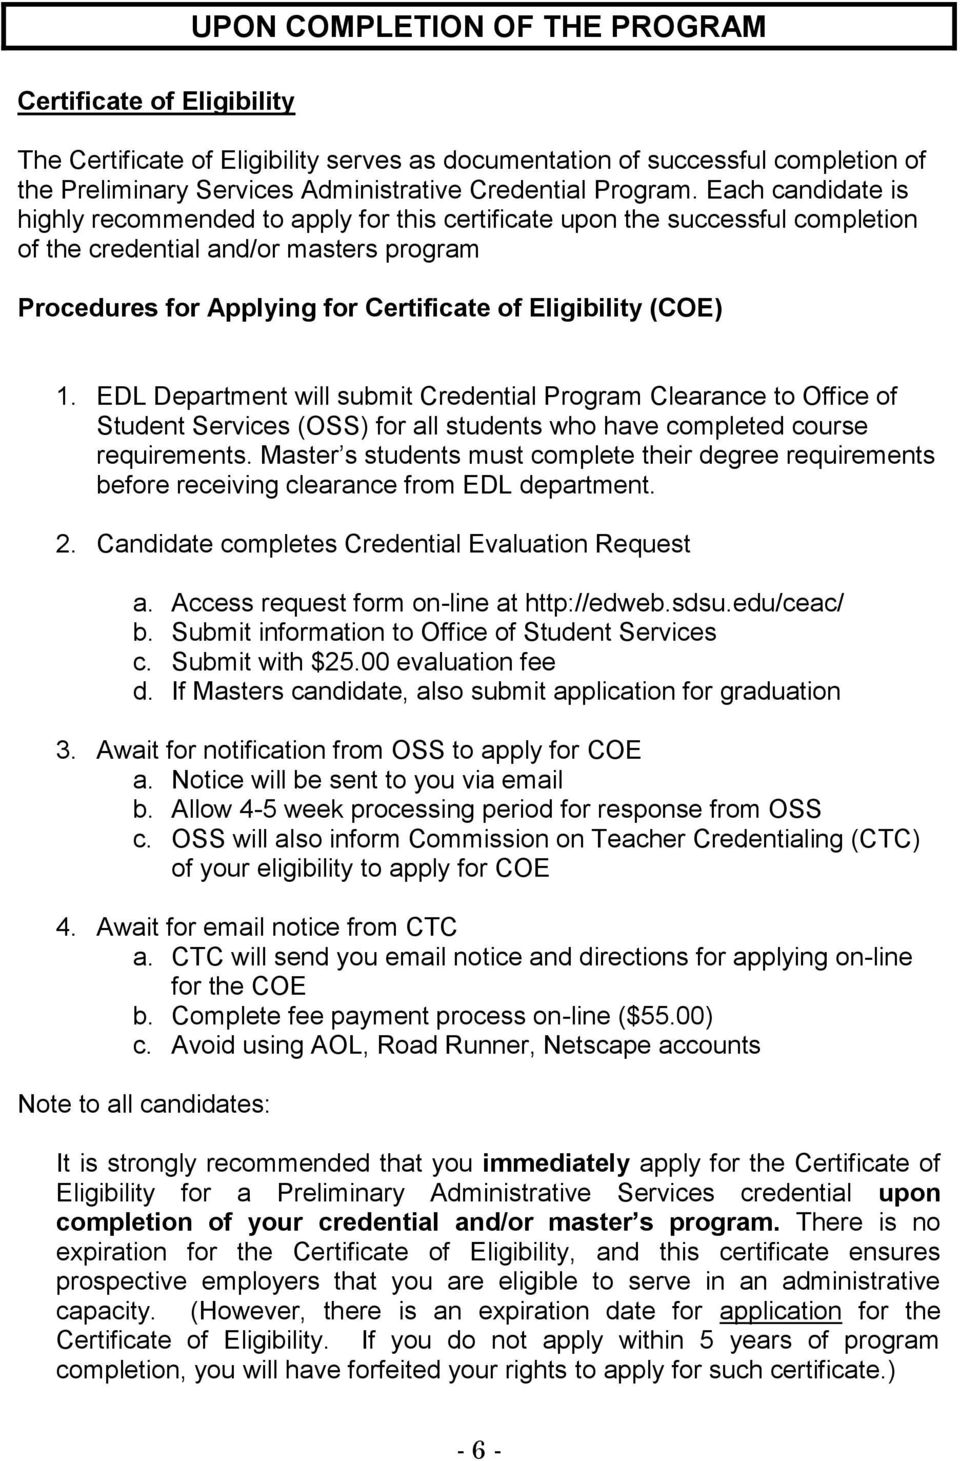 1. EDL Department will submit Credential Program Clearance to Office of Student Services (OSS) for all students who have completed course requirements.